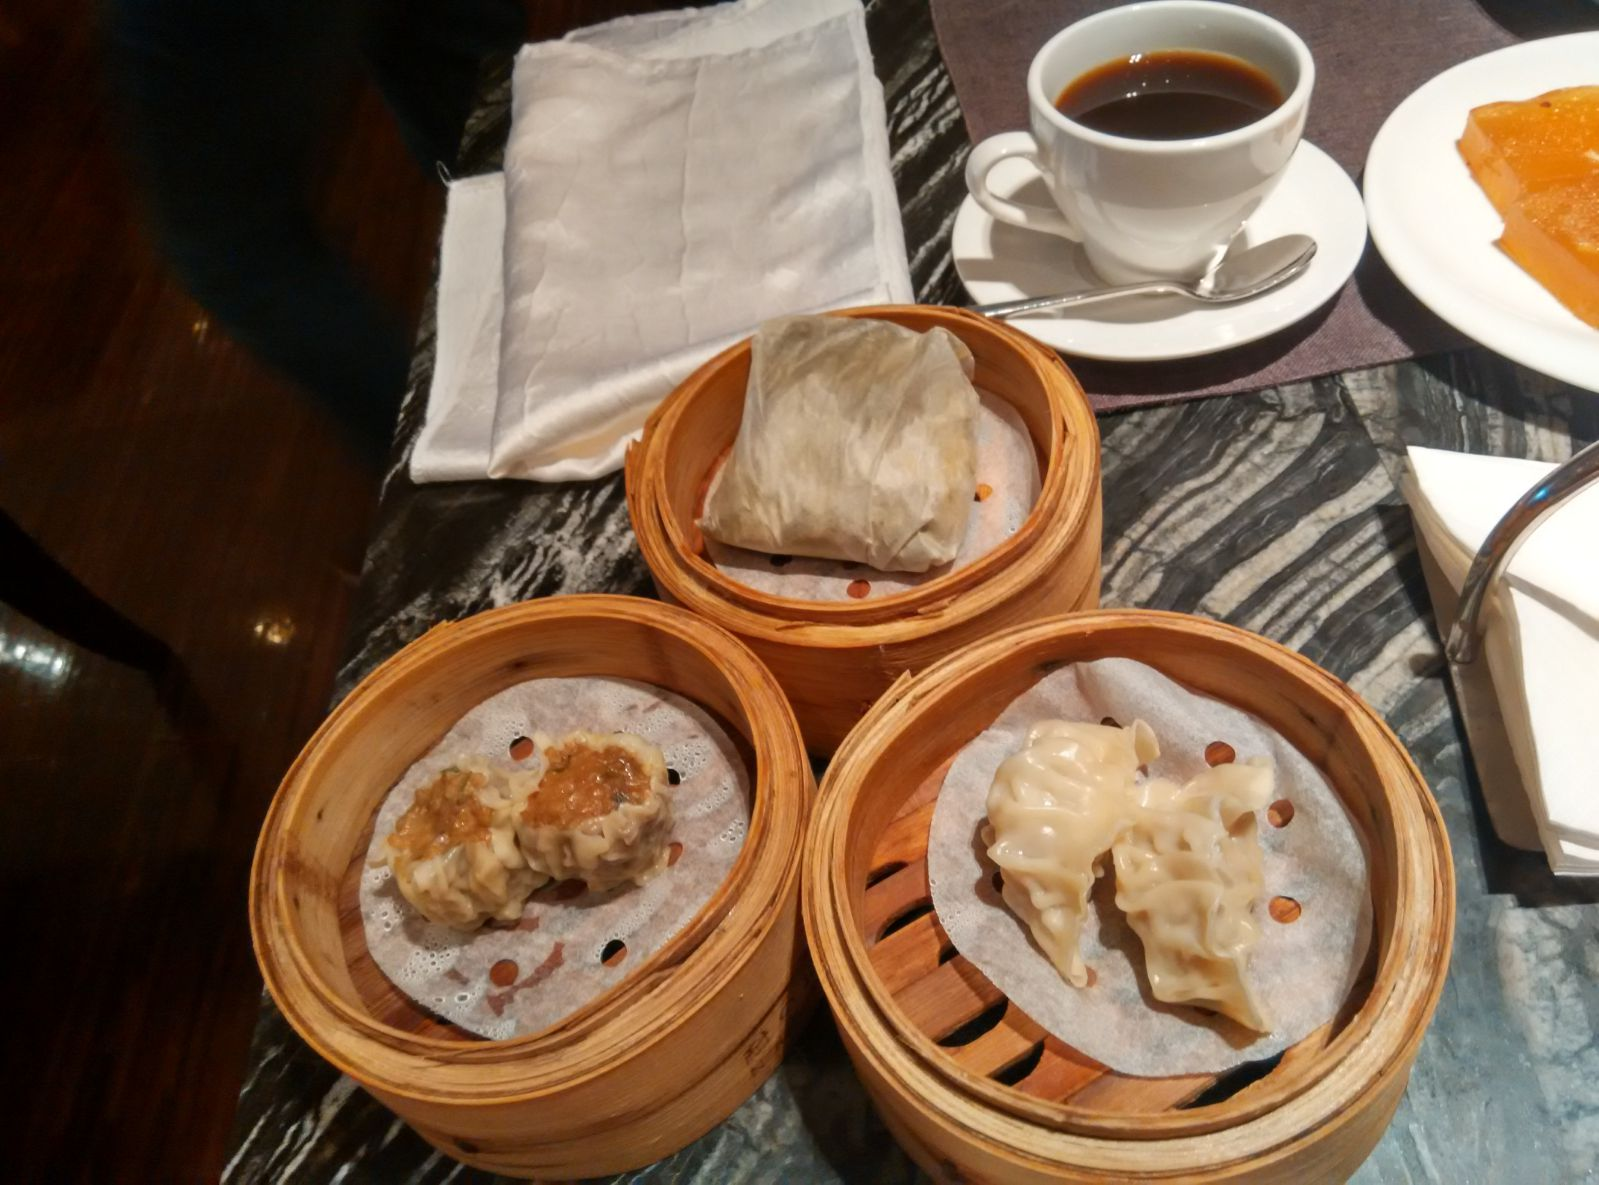 guangzhou-marriott-tianhe-breakfast-6